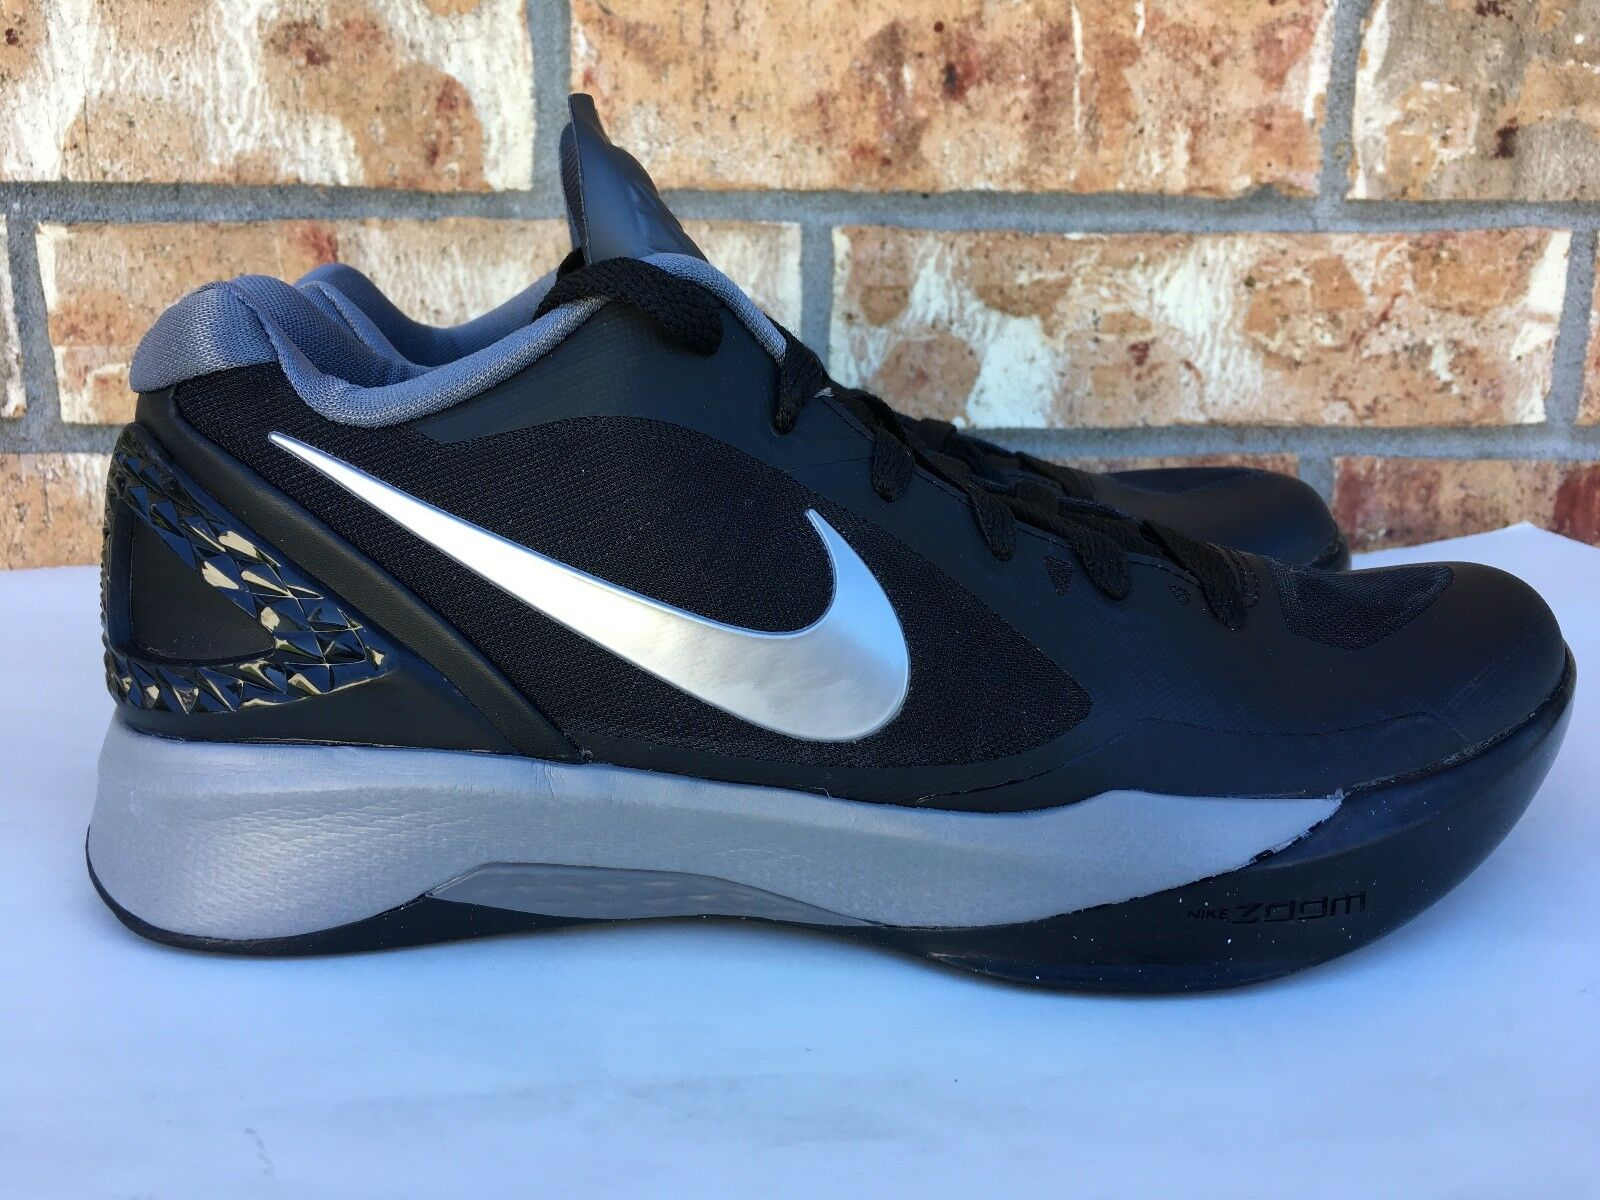 e57351123502 Women s Nike Zoom Volley Hyperspike Volleyball Volleyball Volleyball Shoes  Size 5 -14 585763 001 c7ccea